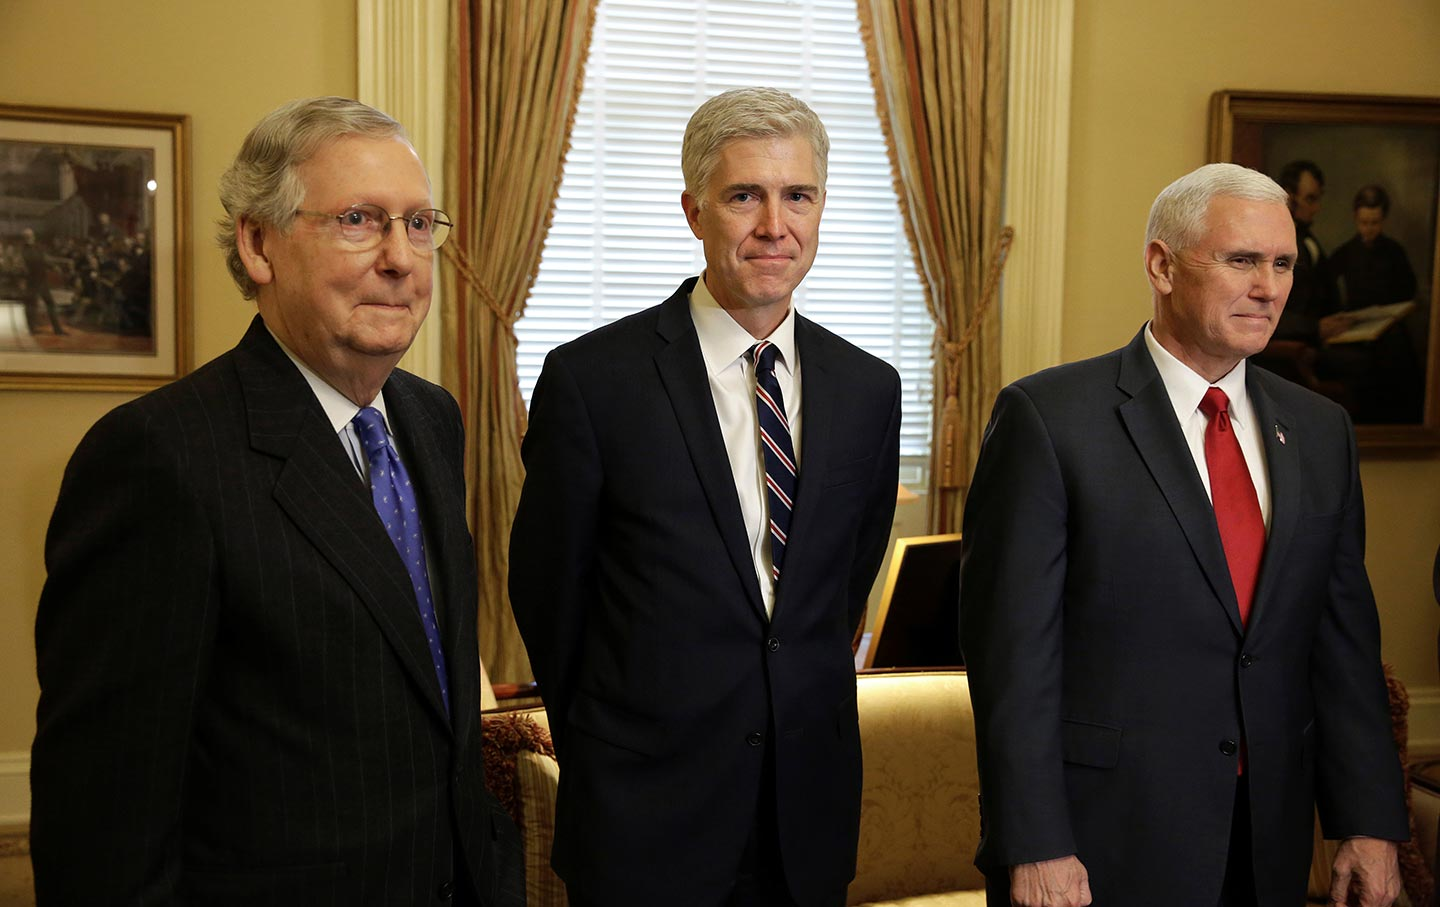 McConnell, Gorsuch, Pence